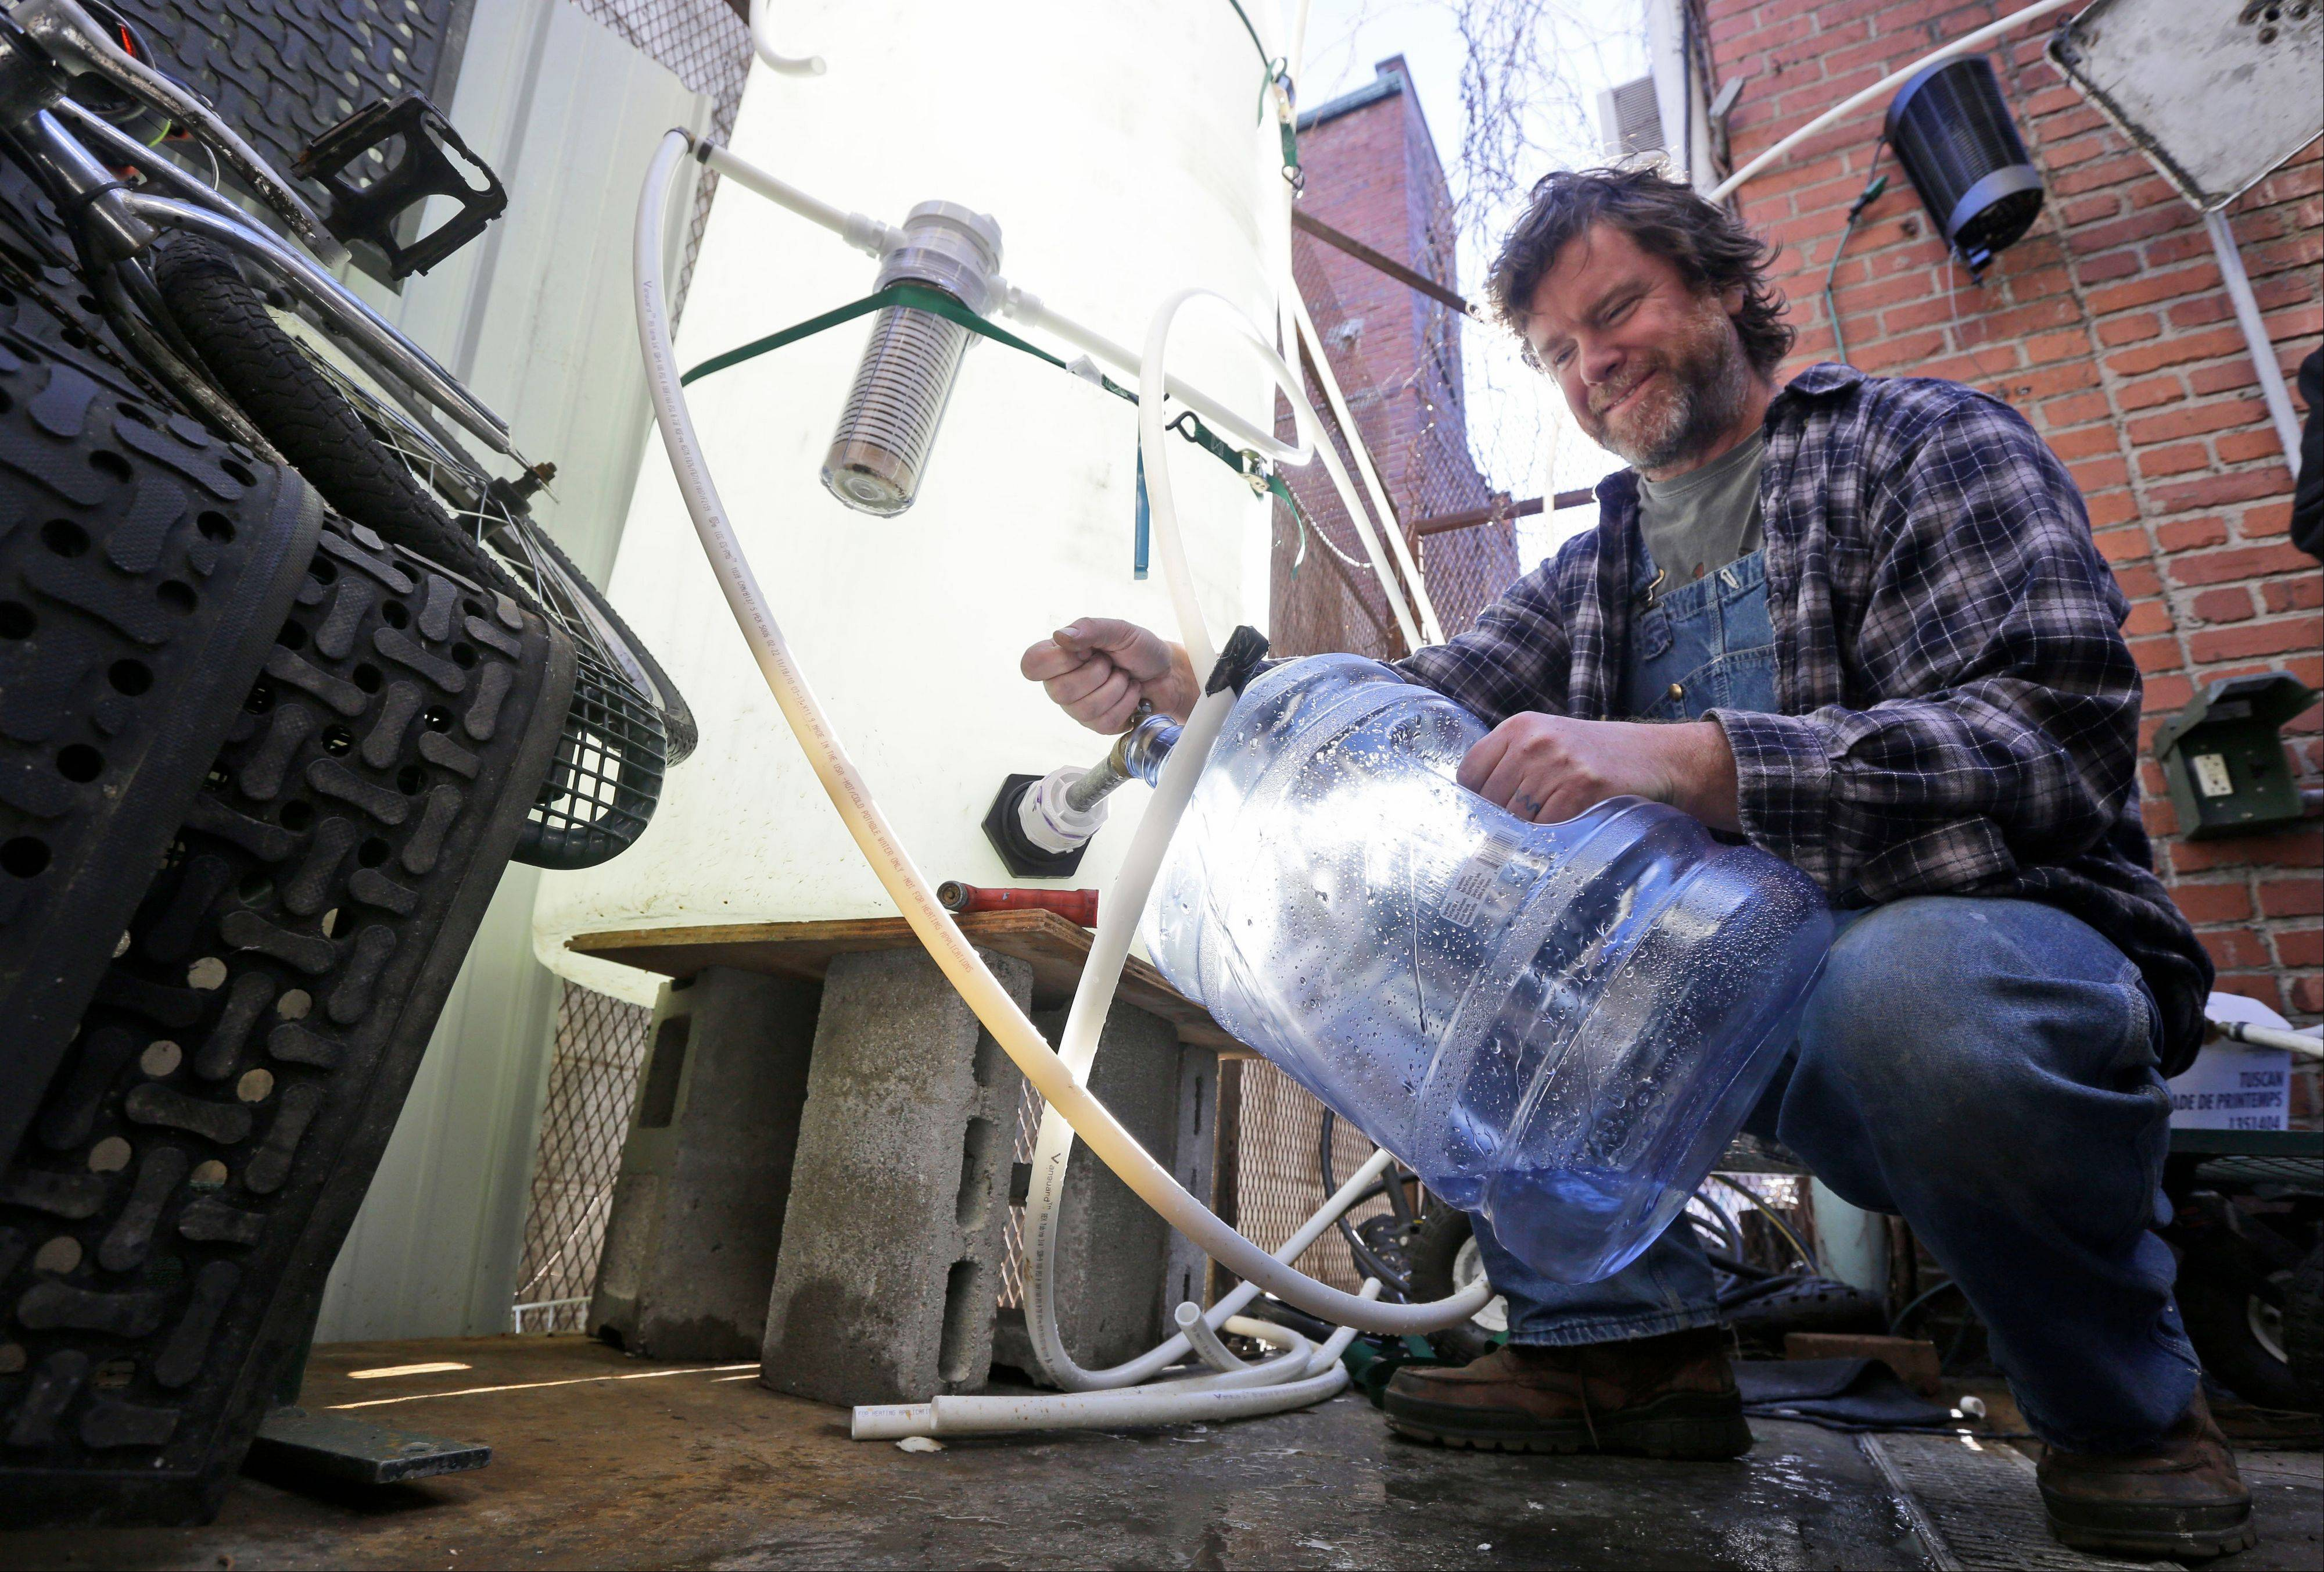 Jonathan Steele, owner of Bluegrass Kitchen, fills a jug with cleaning water in the back of his restaurant in Charleston, W.Va., Tuesday, Jan. 14, 2014. Steele installed a large tank in the back of his restaurant and was able to open using bottled water on Sunday.